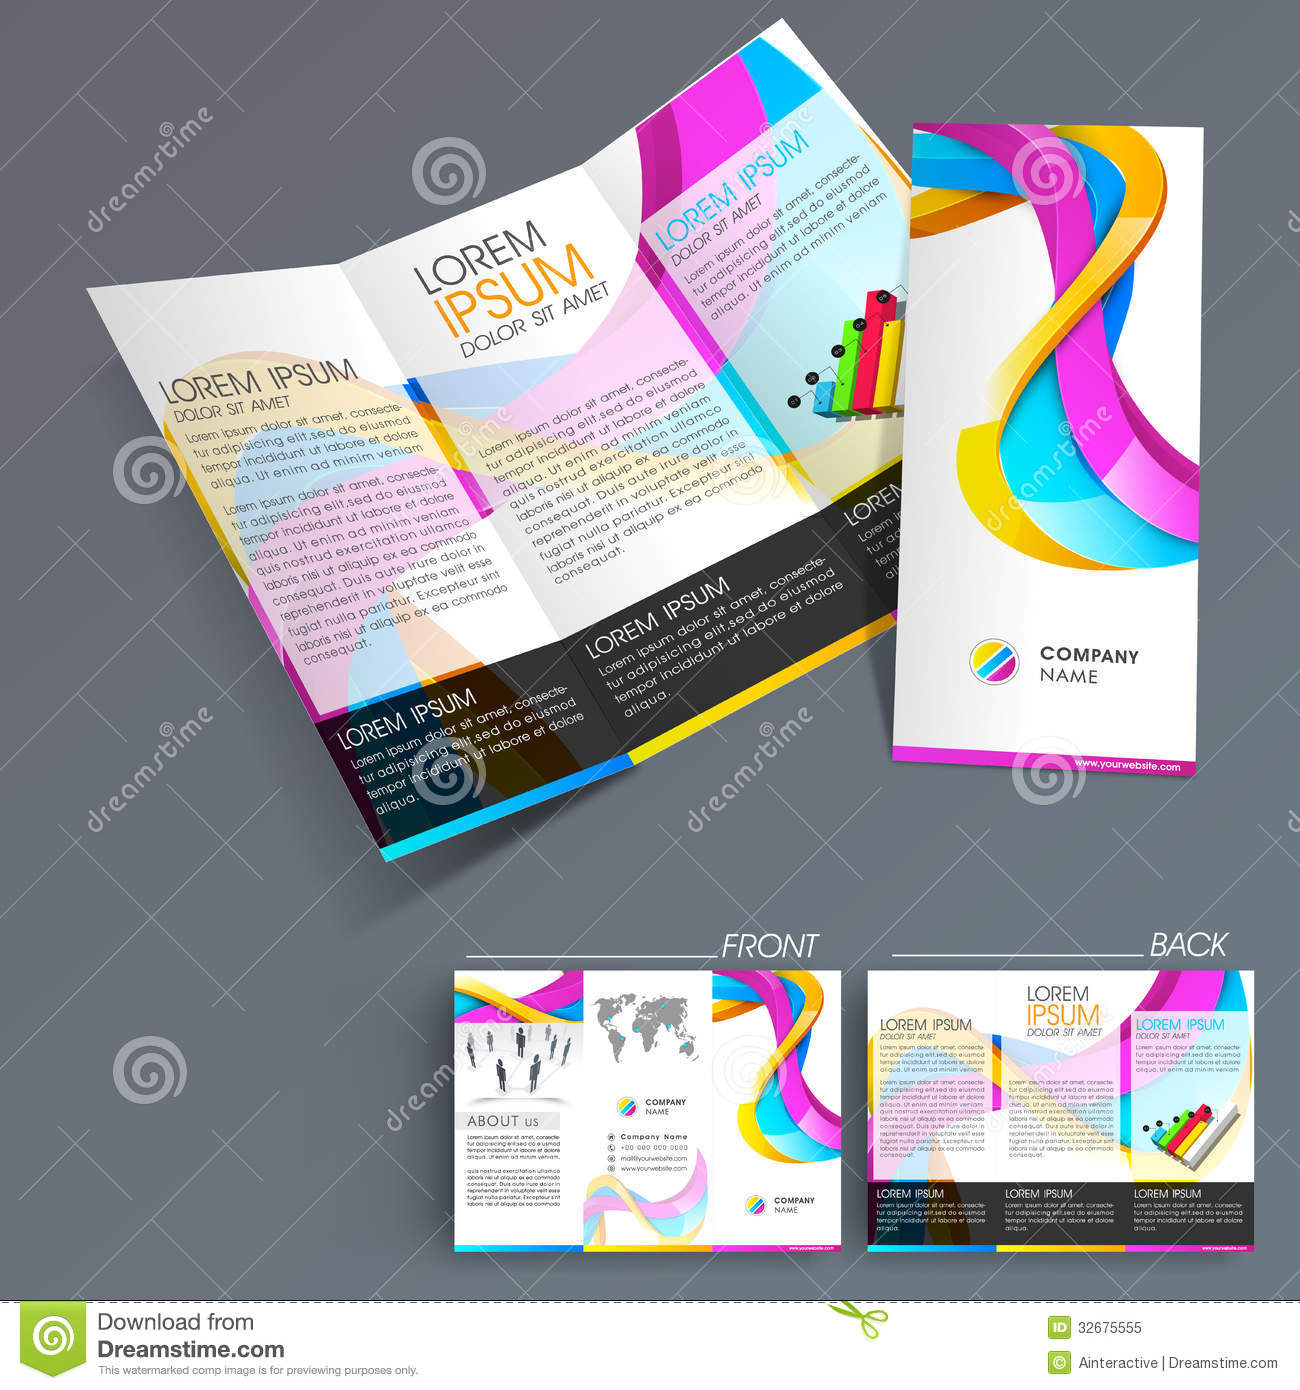 Create Free Flyers Templates Acurnamedia